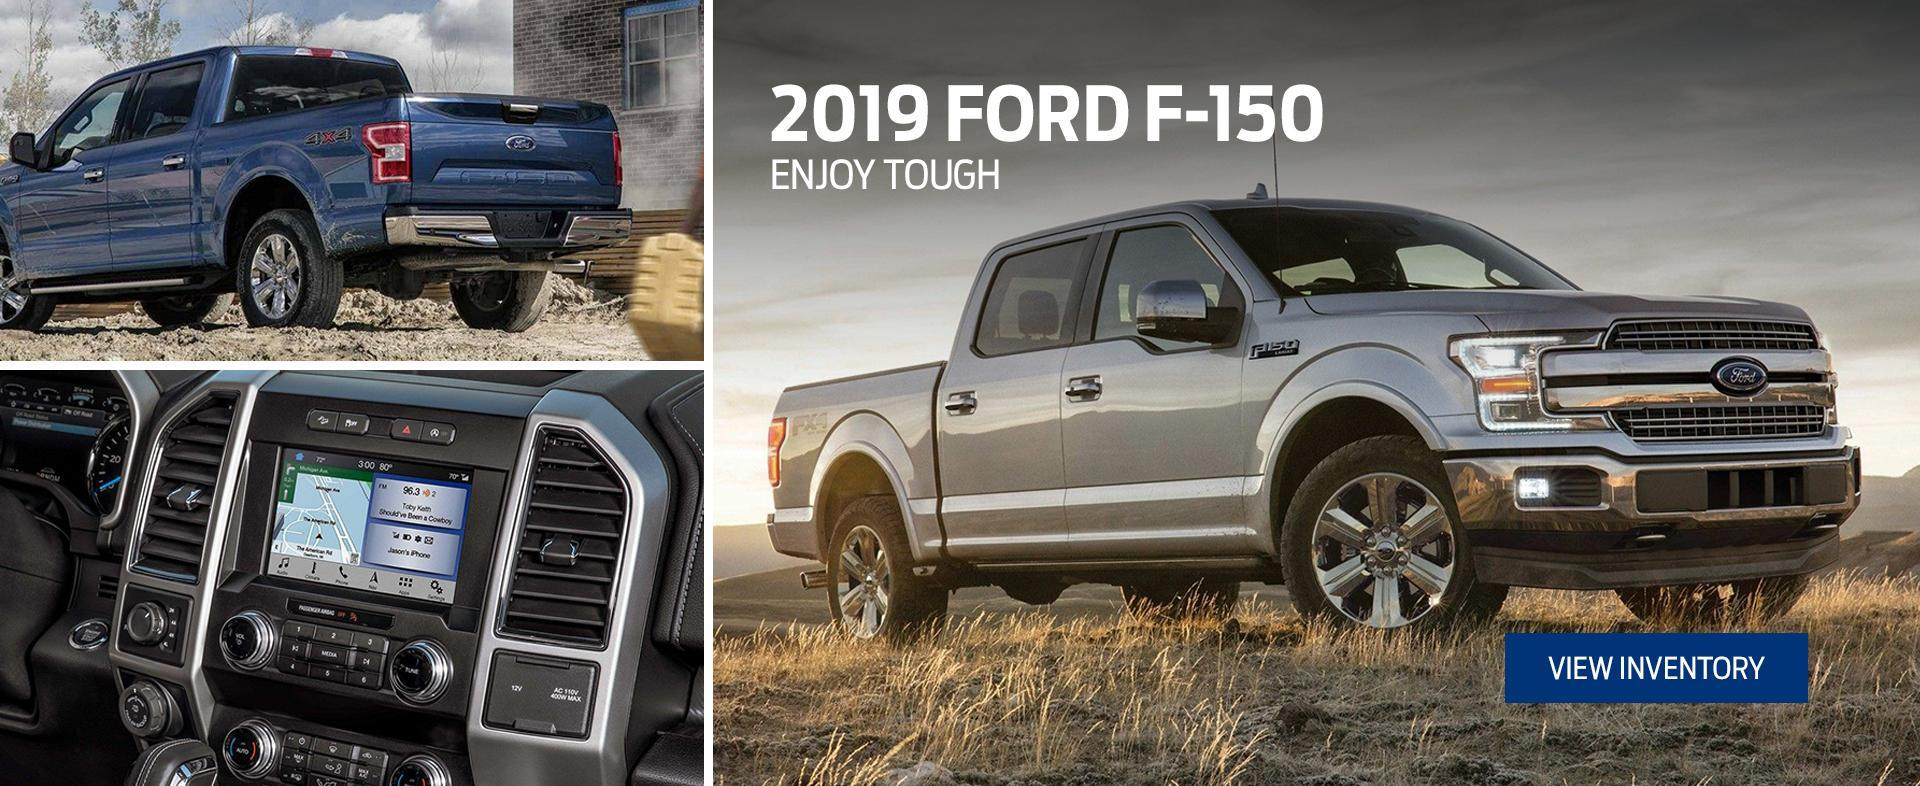 Ford Home 2019 F-150 Inventory